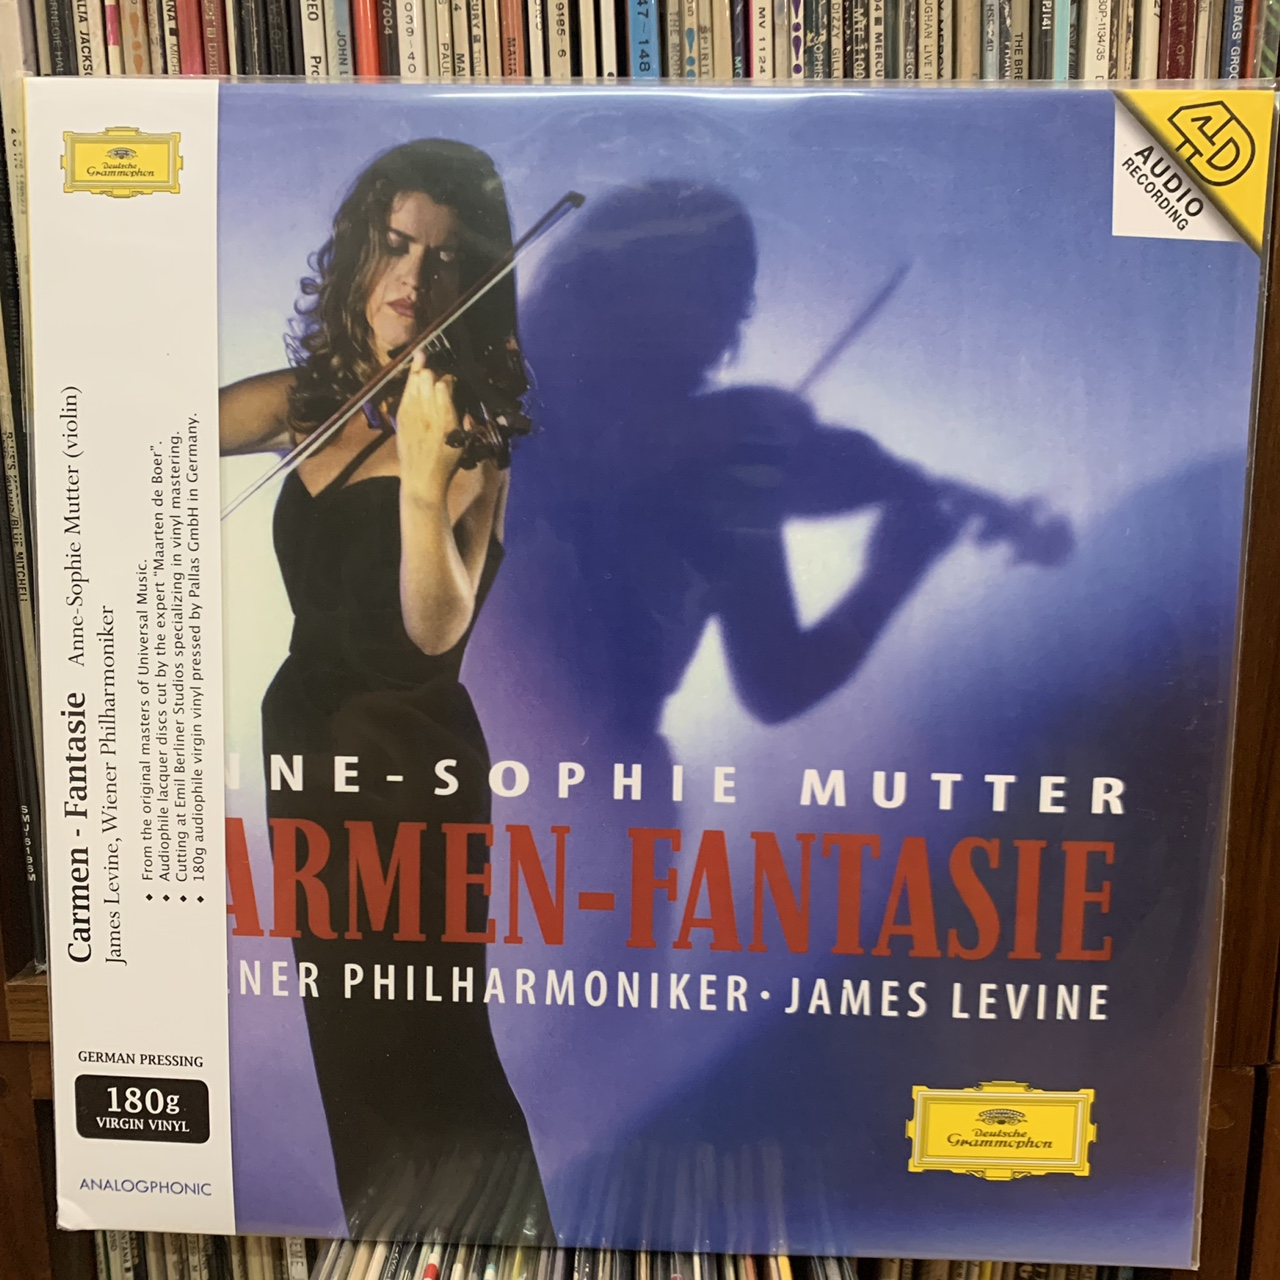 lp-anne-sophie-mutter-carmen-fantasie